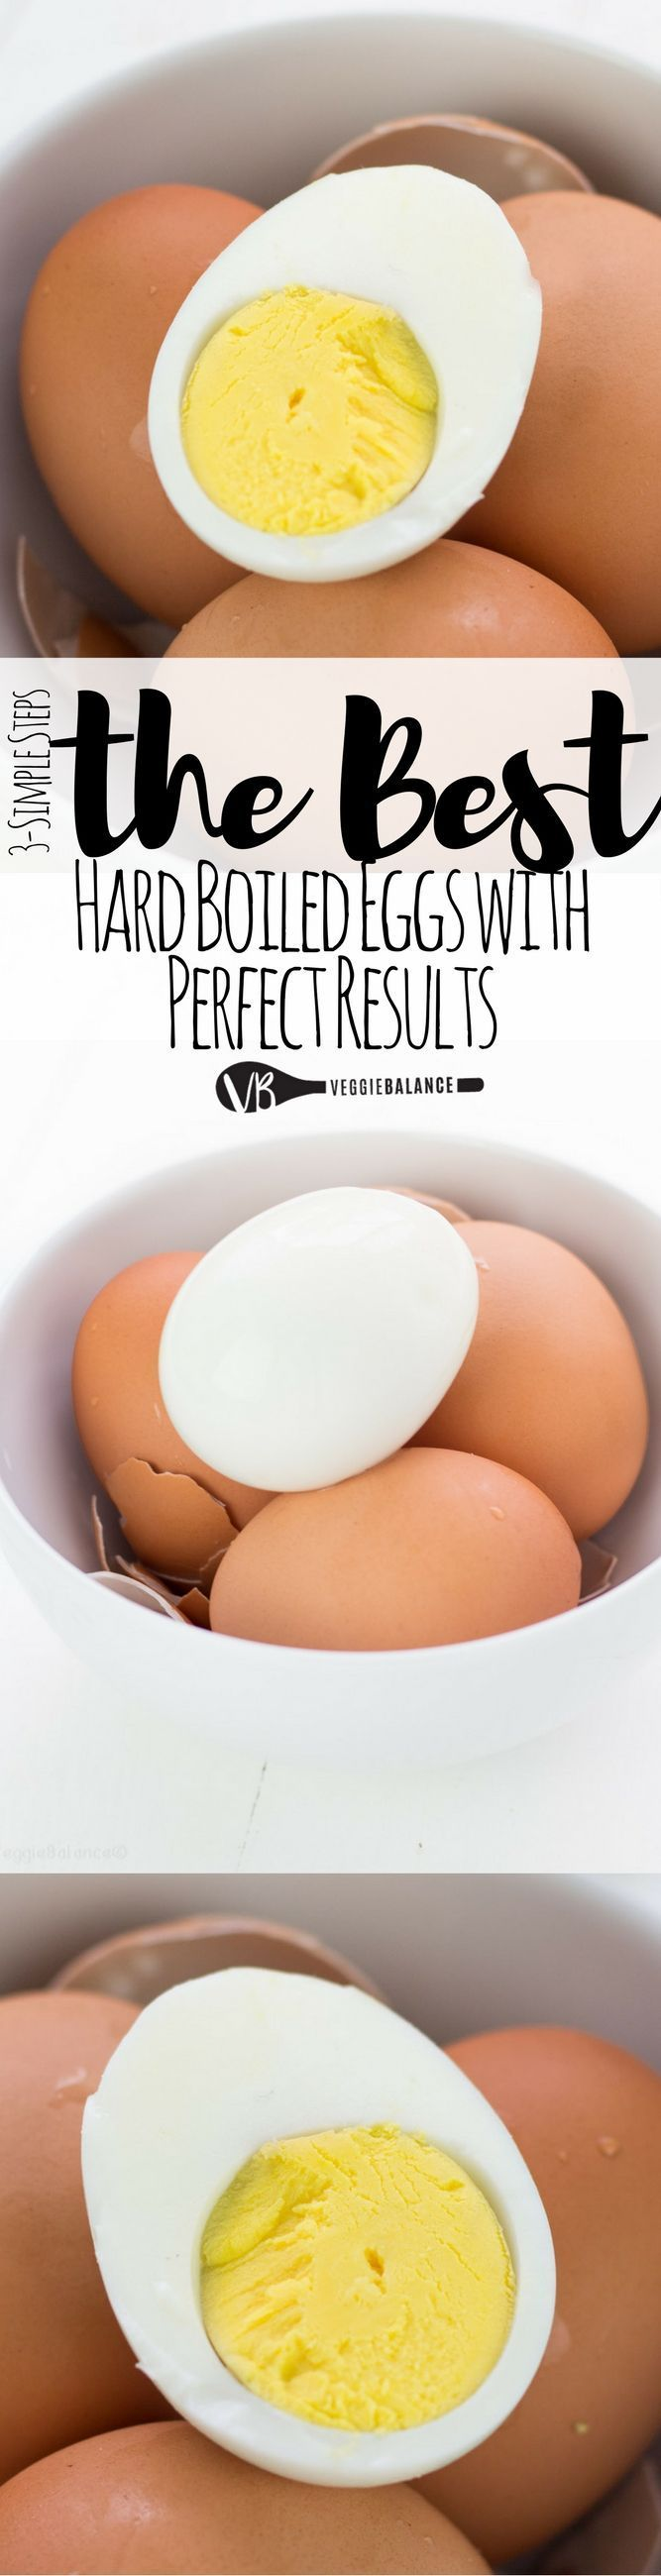 How to Make the Perfect Hard Boiled Eggs are a simple 3-step process to achieve perfected cooked, easy-to-peel and ready to add to any dish or eat as is boiled egg. It's brilliant!